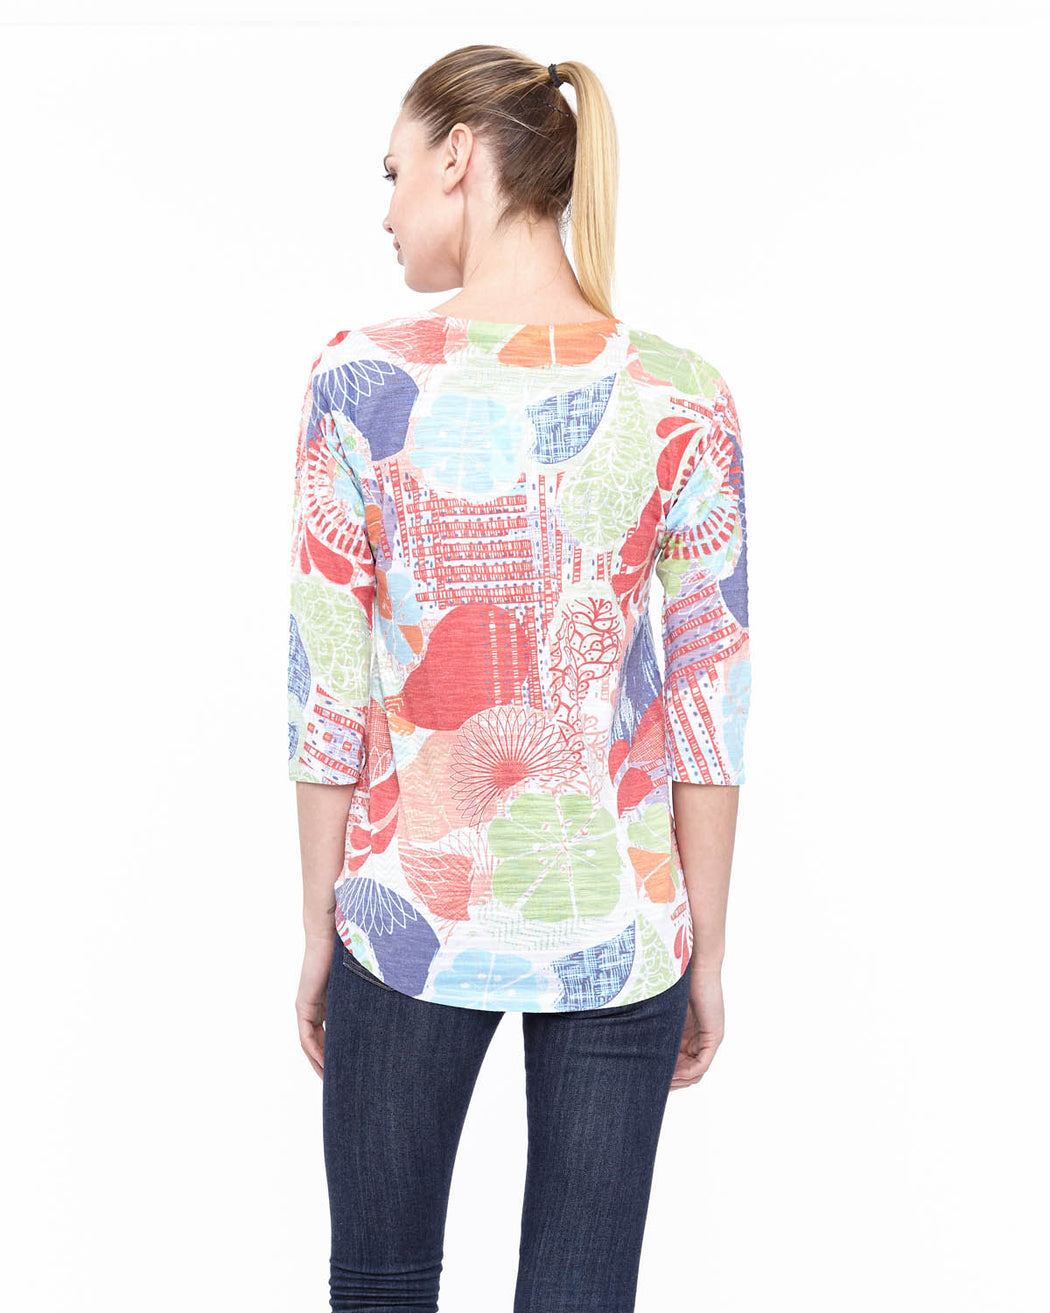 Tunic 2 in Cirque Print - Atelier5